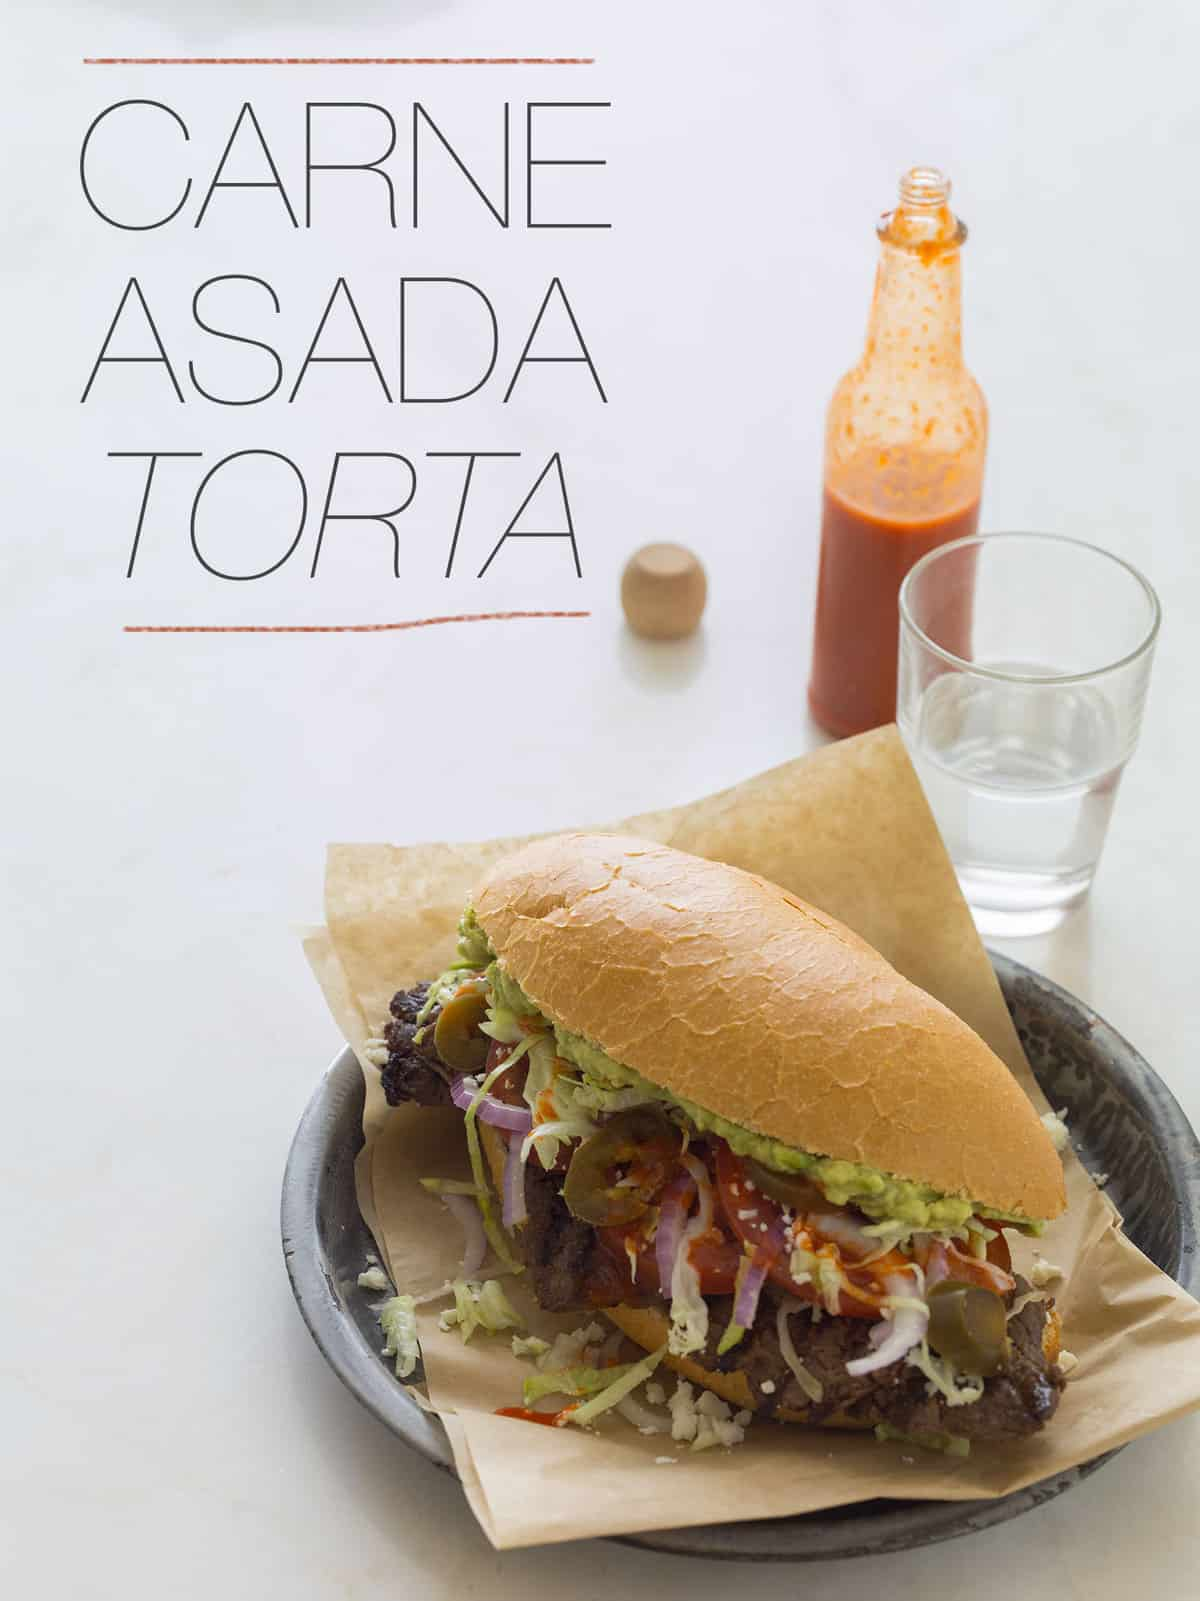 Carne Asada Torta | Epic Sandwich recipe | Spoon Fork Bacon